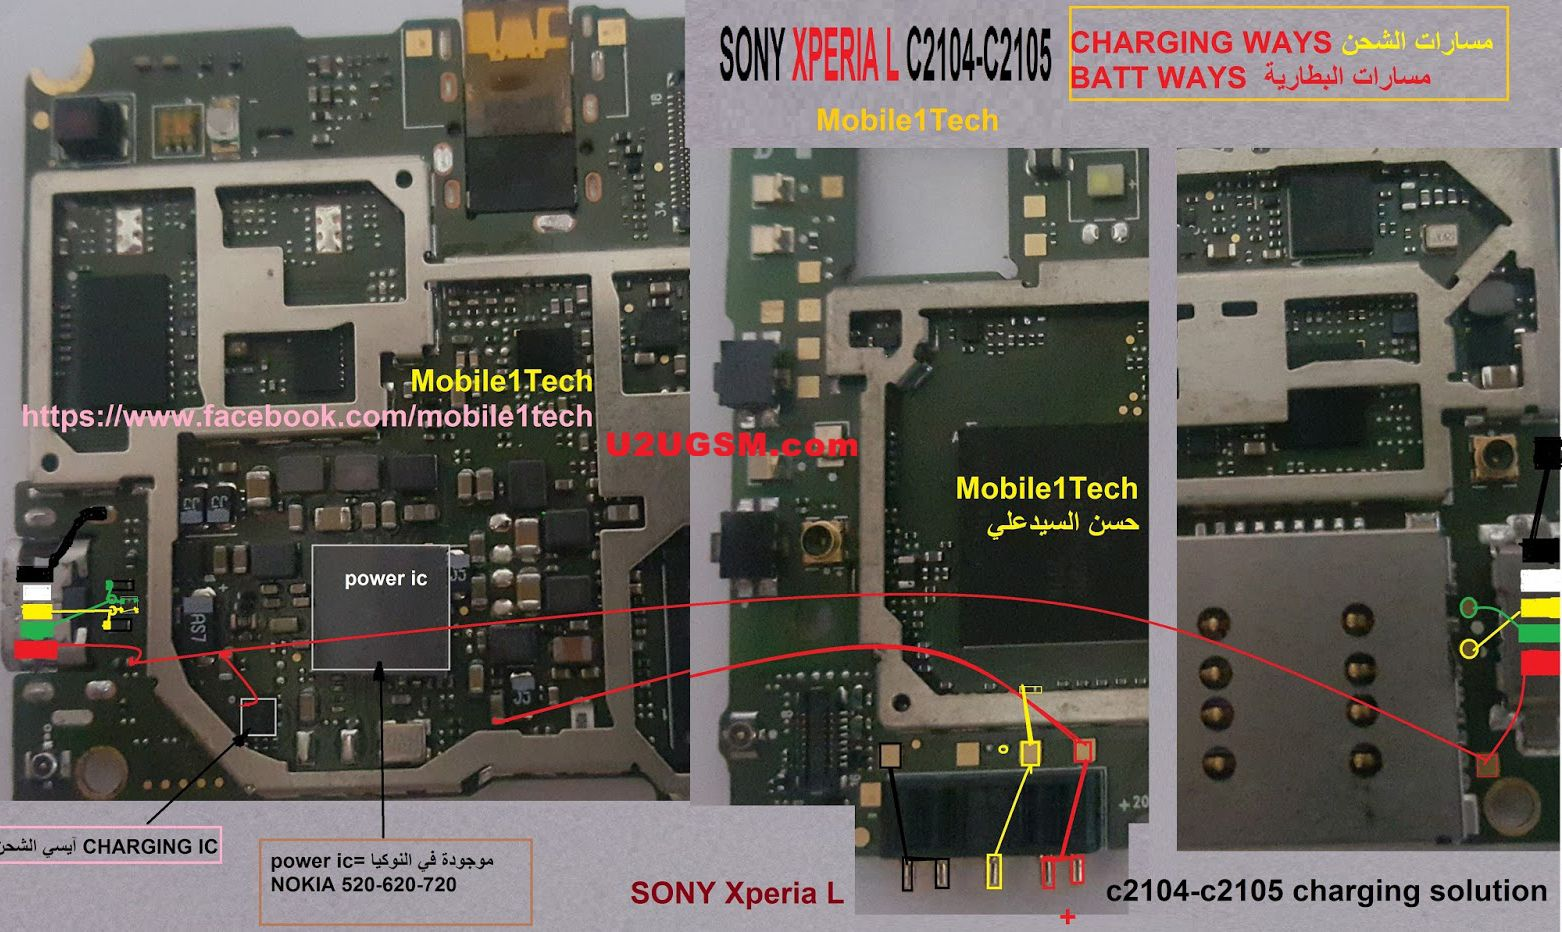 sony xperia p circuit diagram wiring library sony xperia st25i schematic diagram sony xperia l circuit diagram [ 1562 x 932 Pixel ]